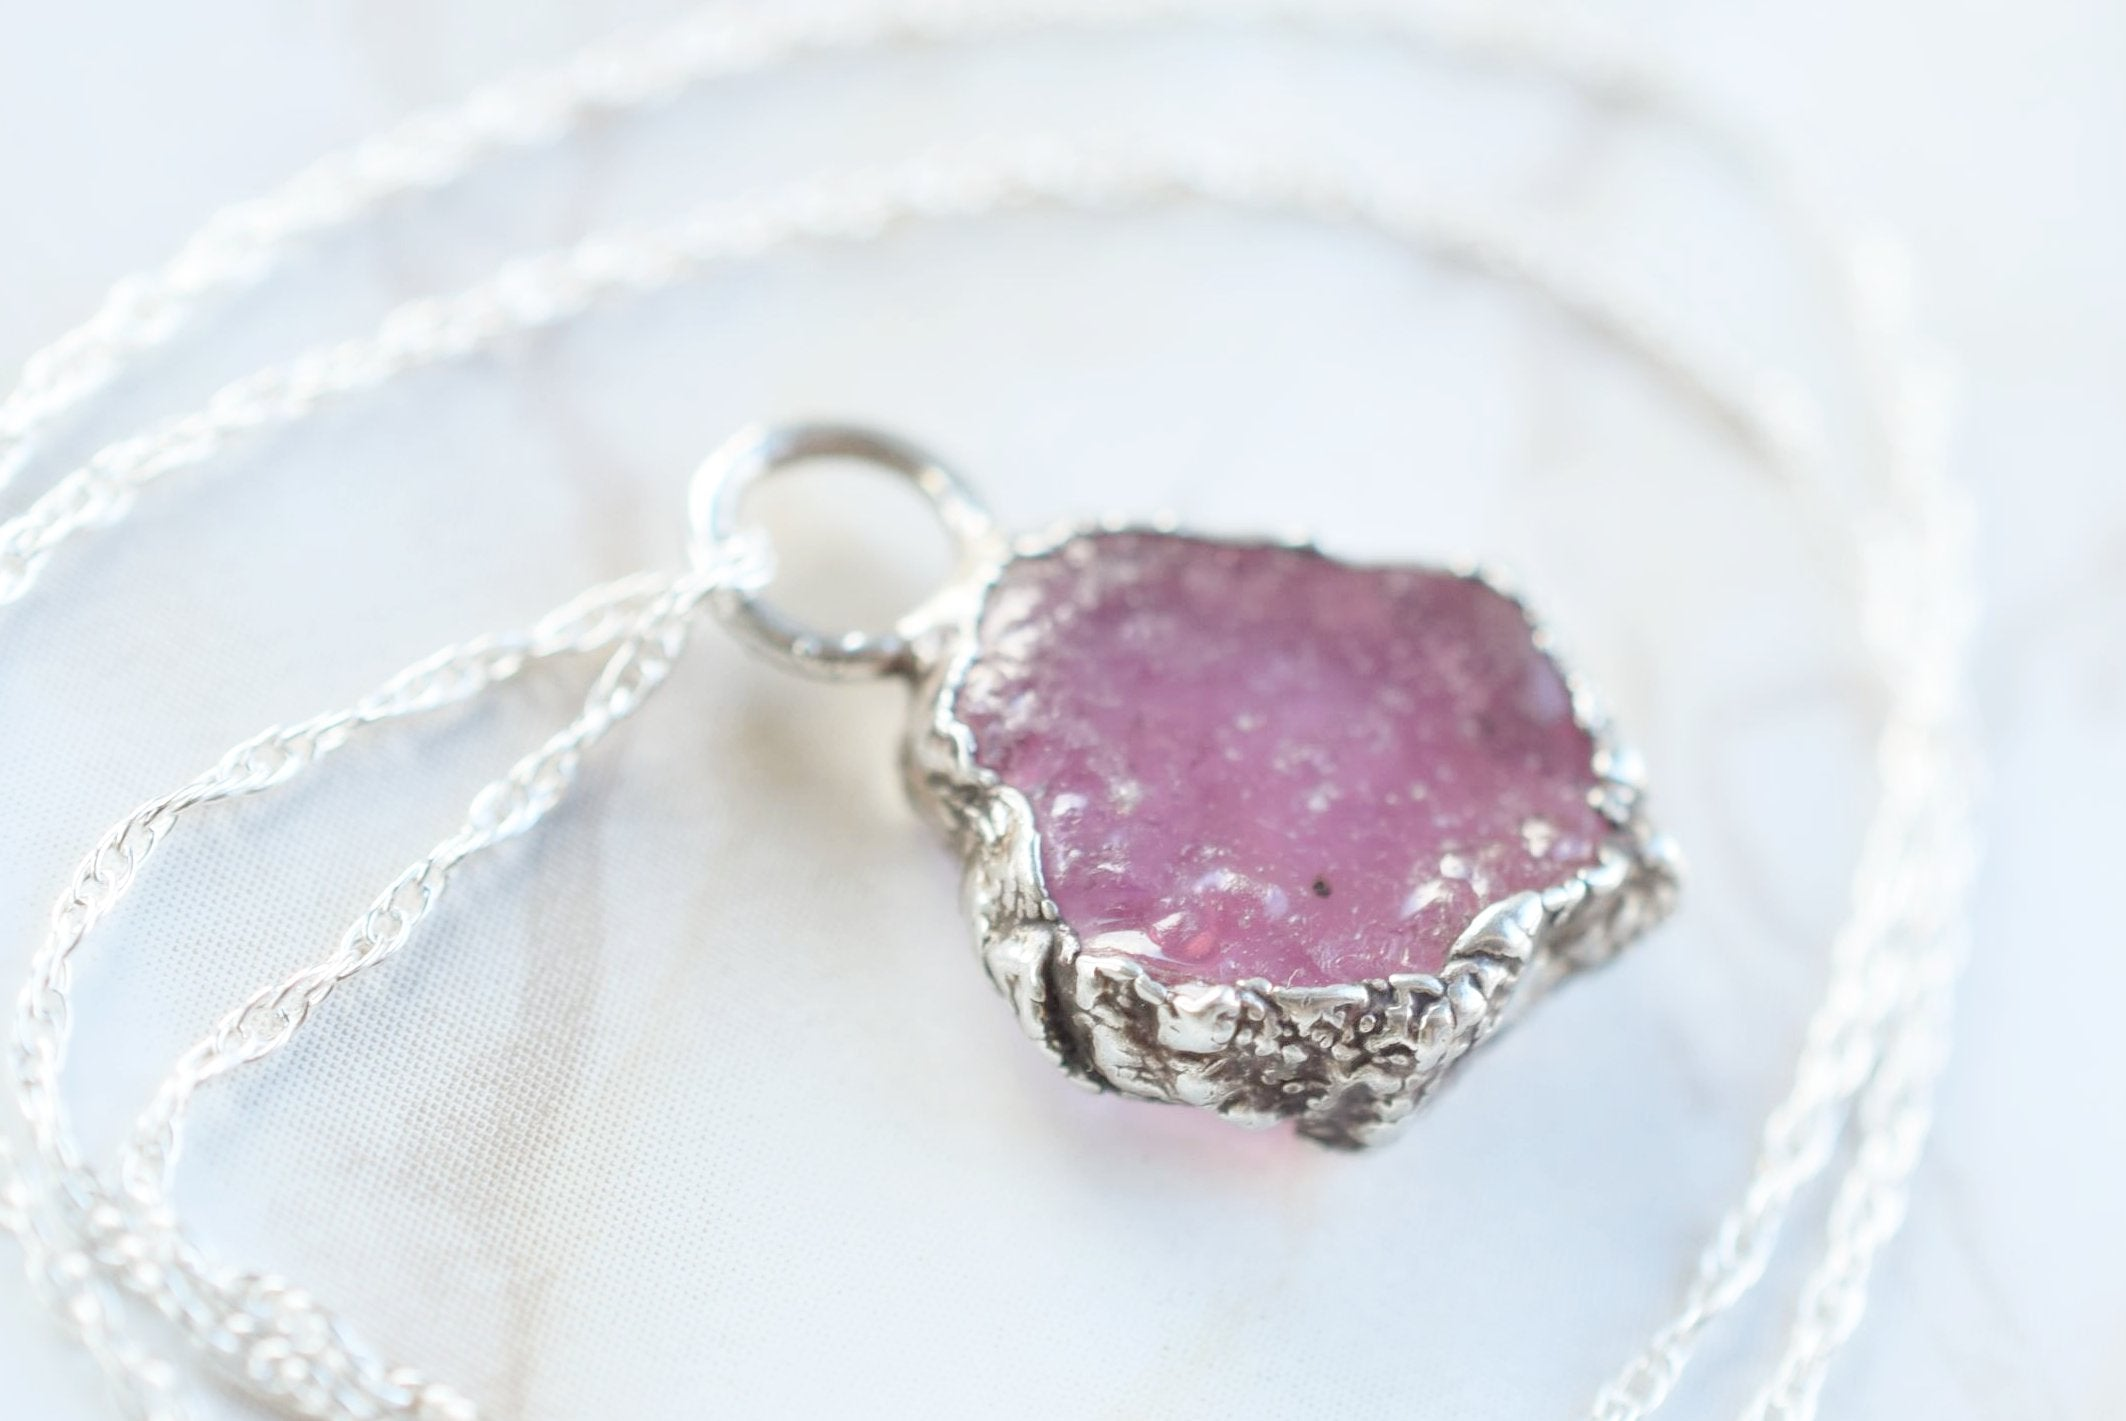 ROUGH RUBY NECKLACE IN FINE SILVER